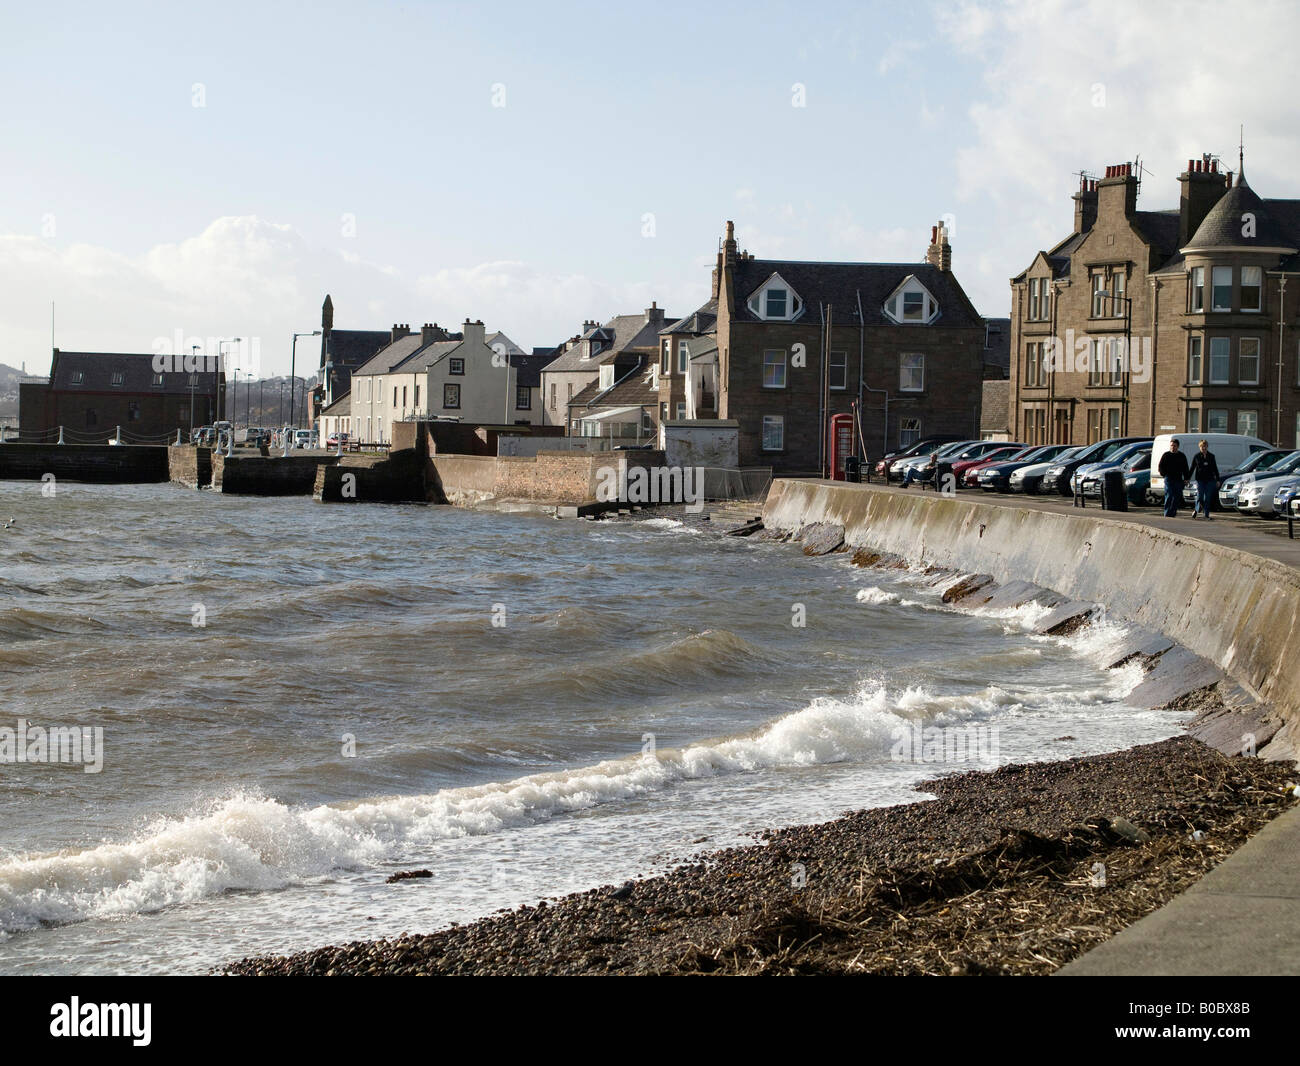 Broughty Ferry, Dundee, Tayside, Scotland - Stock Image